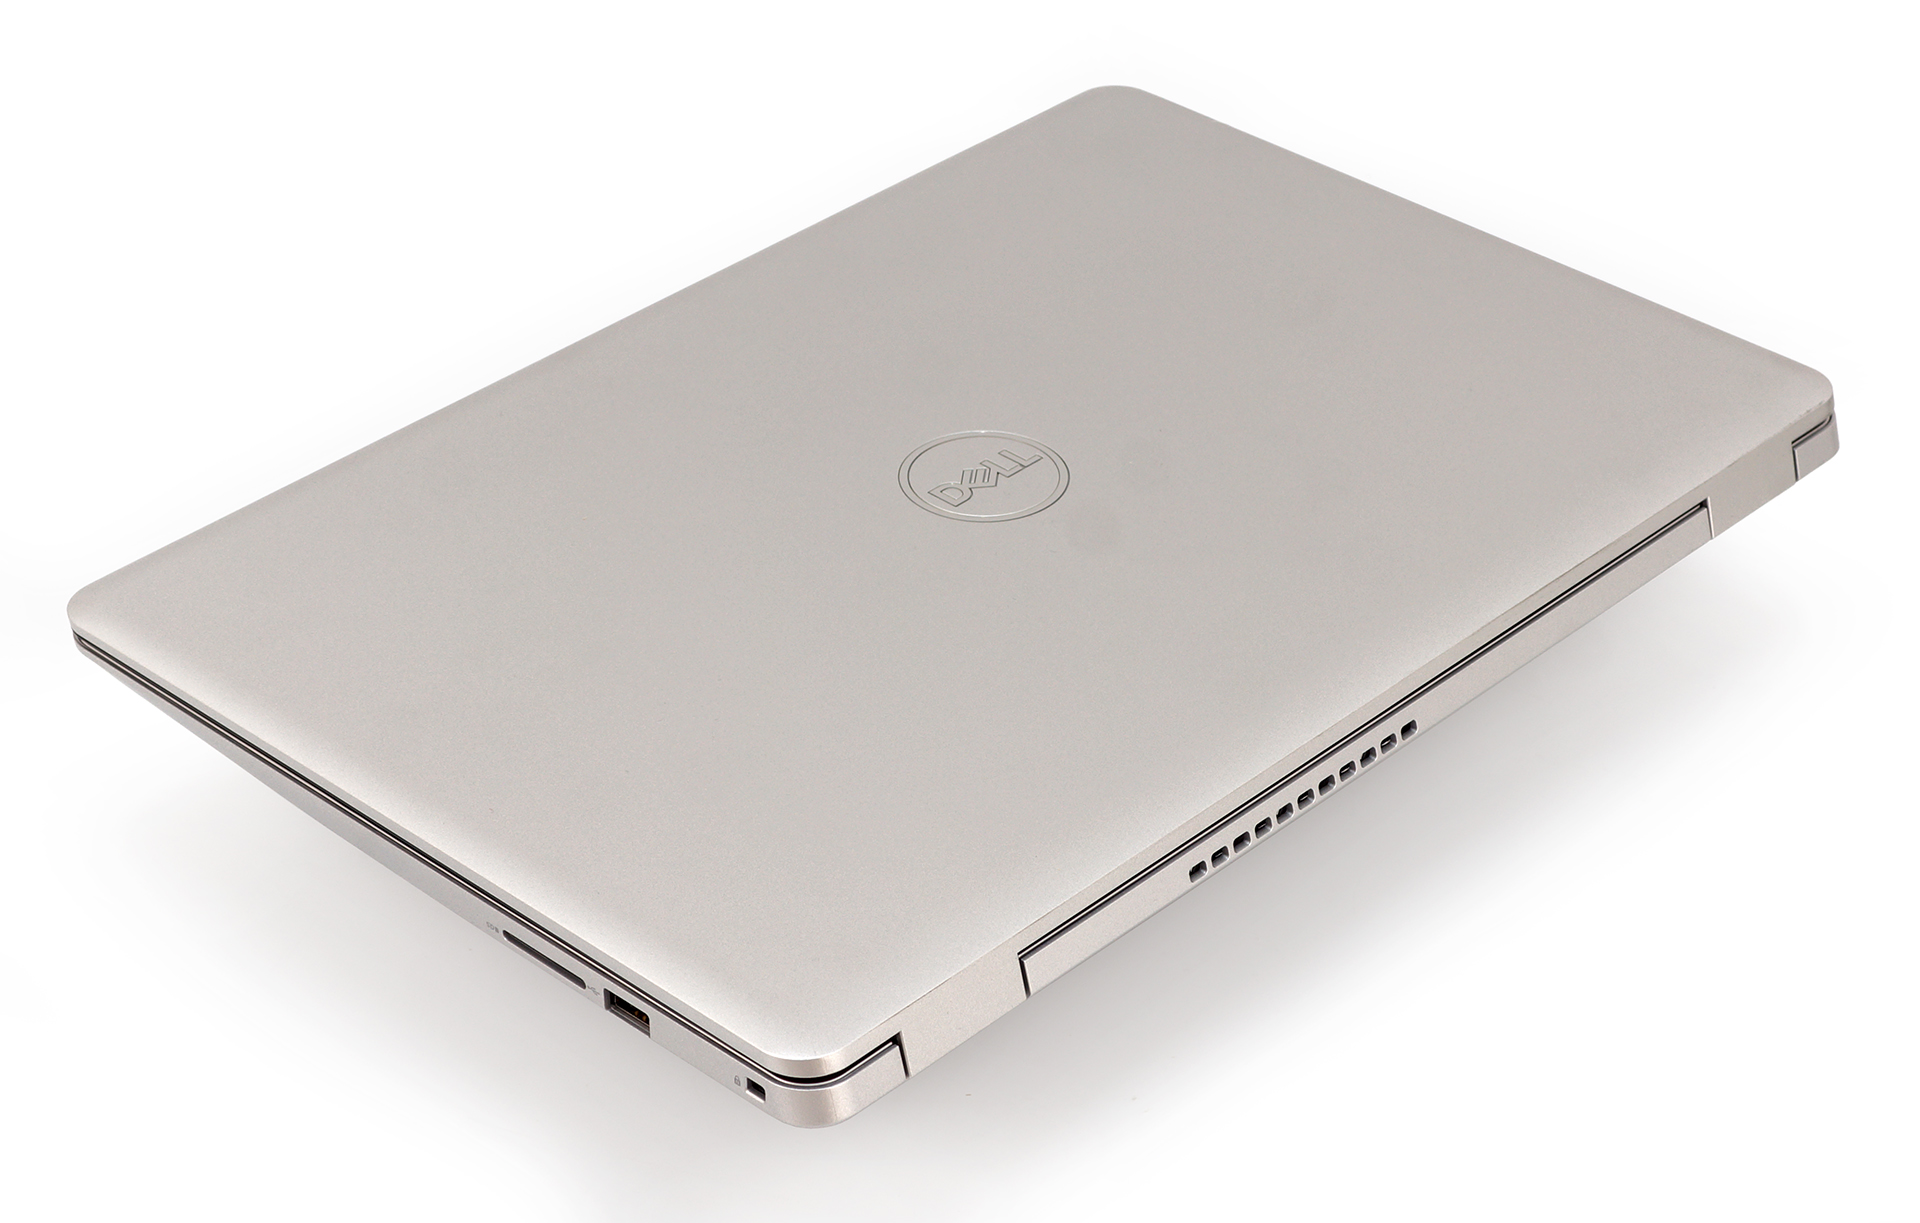 Dell Inspiron 15 5584 review – a multimedia solution which